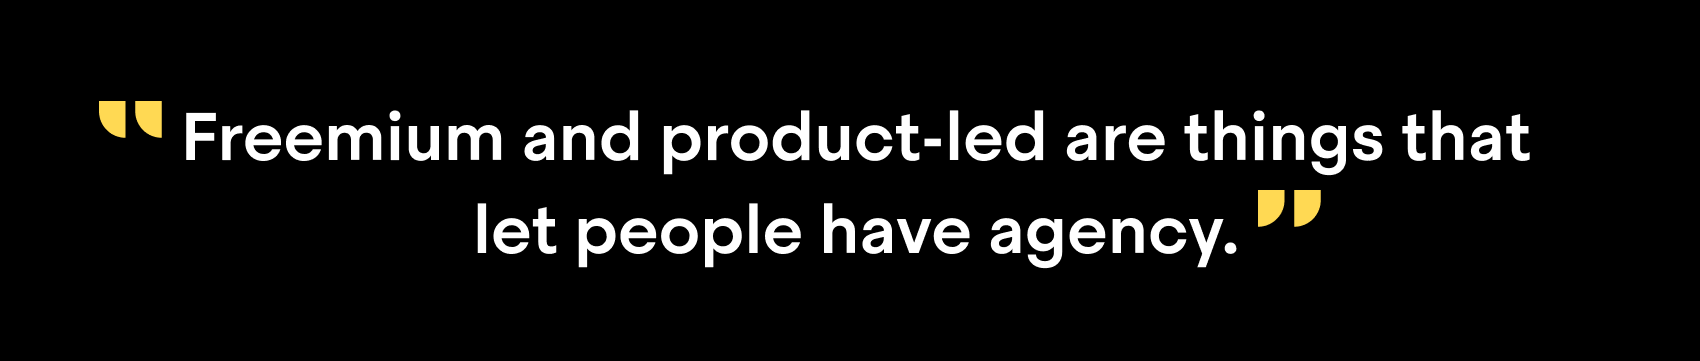 """Freemium and product-led are things that let people have agency"""